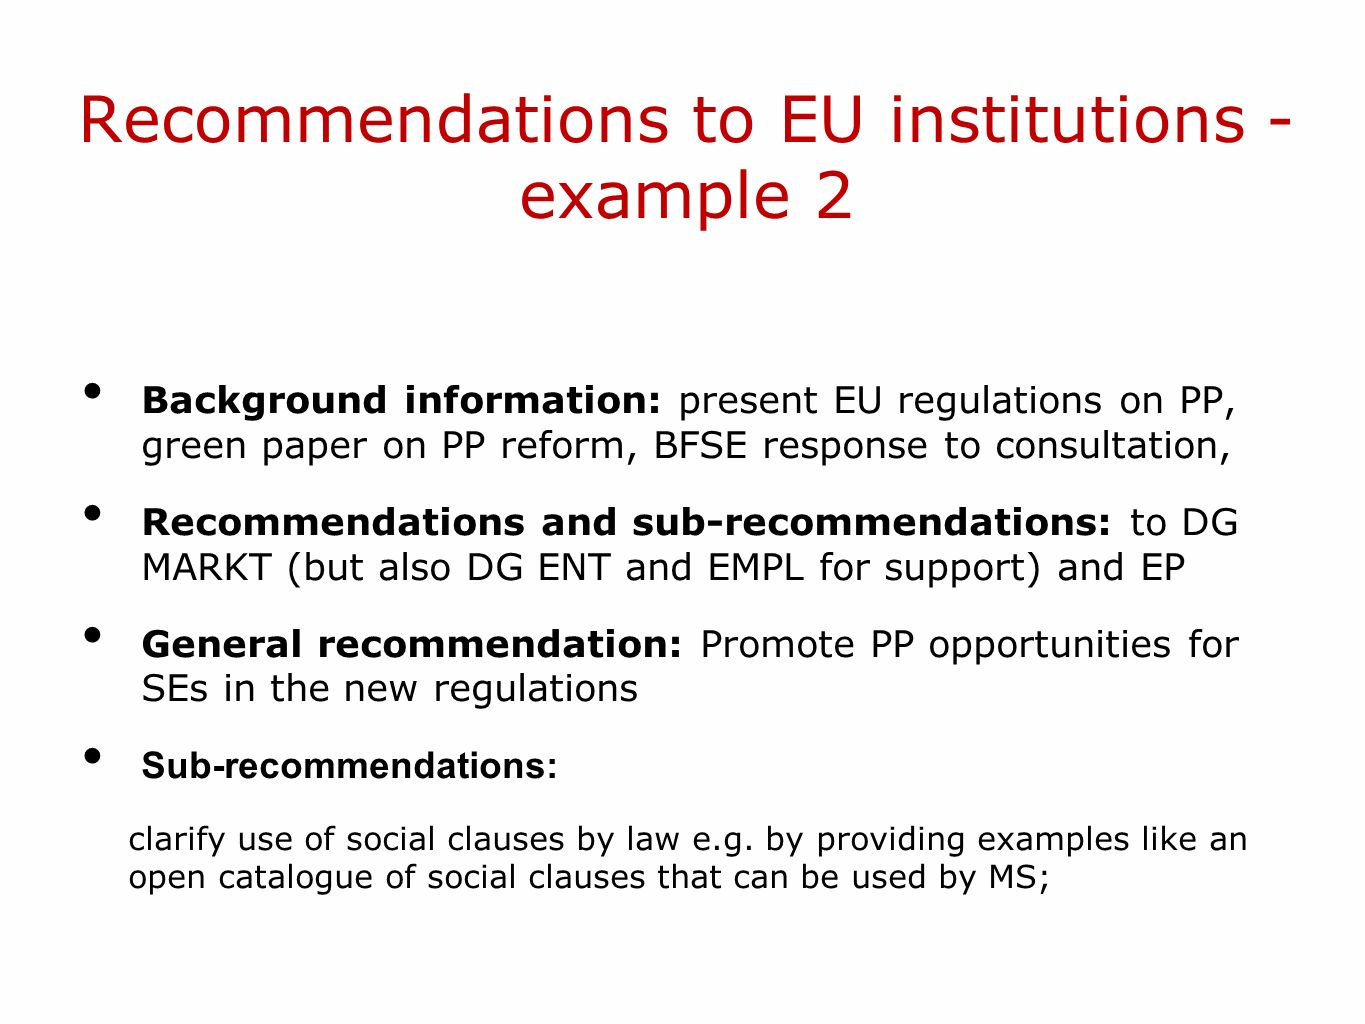 Recommendations to EU institutions - example 2 Background information: present EU regulations on PP, green paper on PP reform, BFSE response to consul